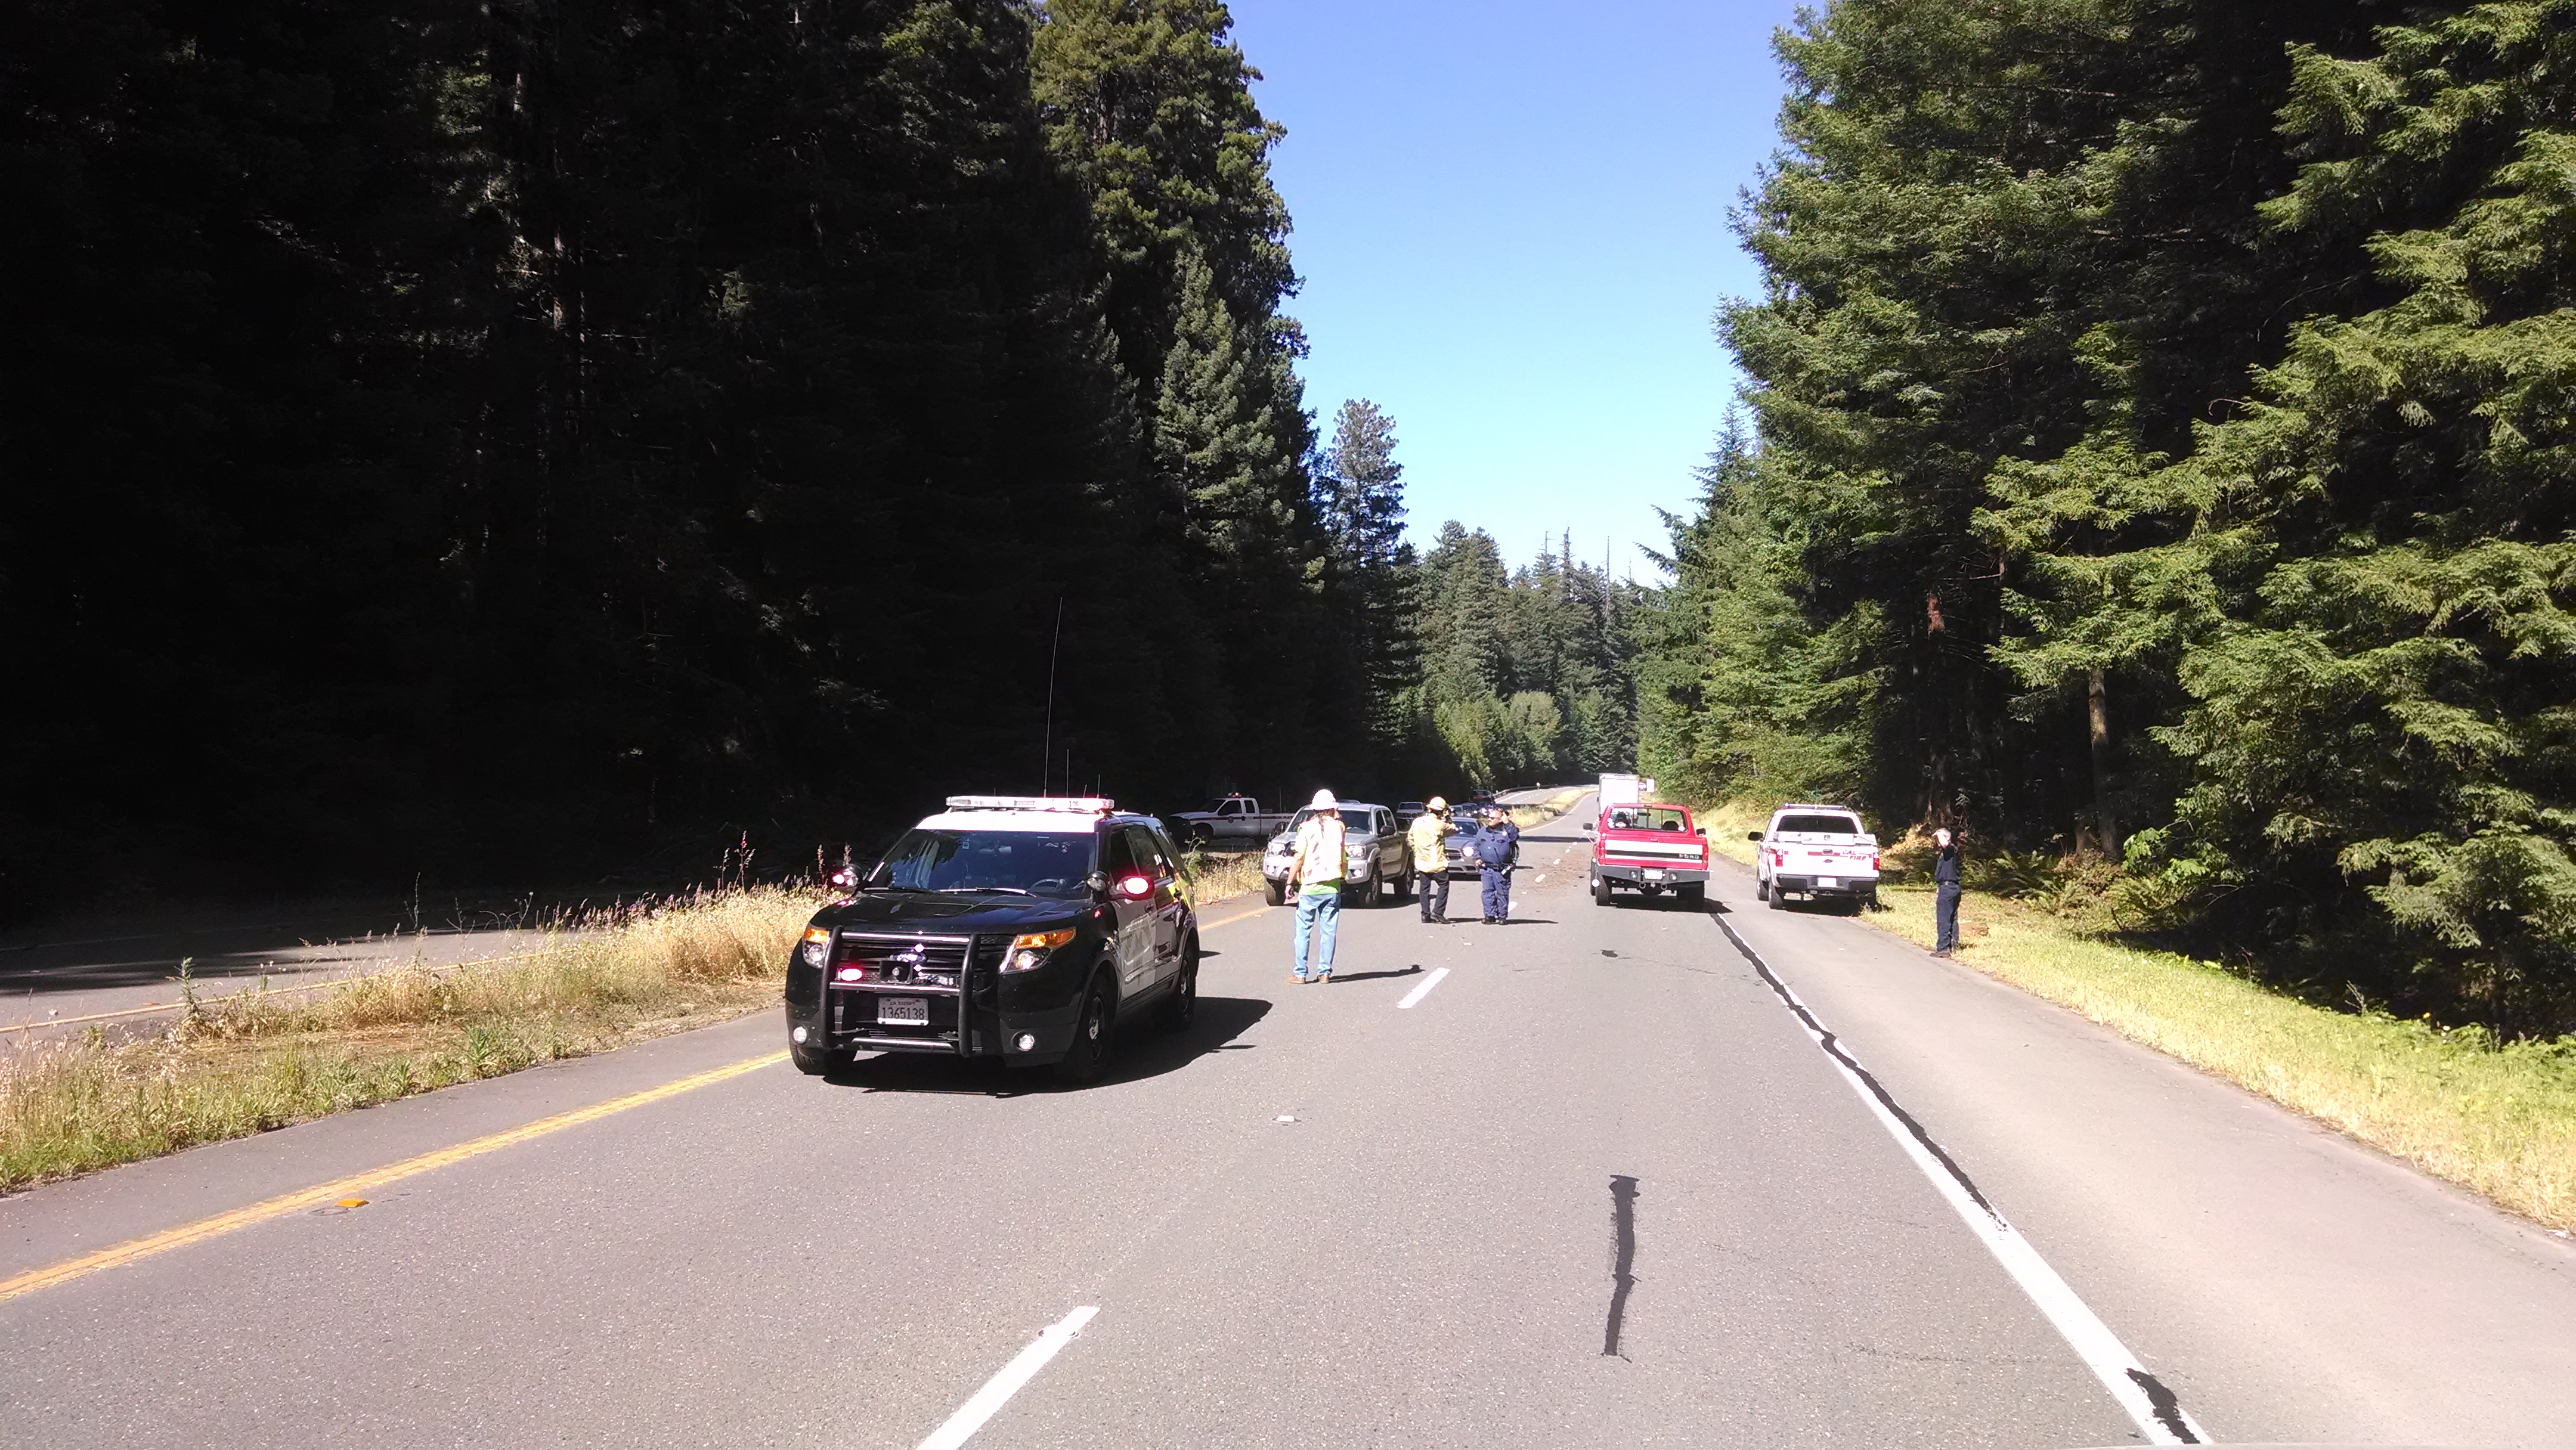 CHP stopped traffic as Caltrans crews looked at the situation. [Photo